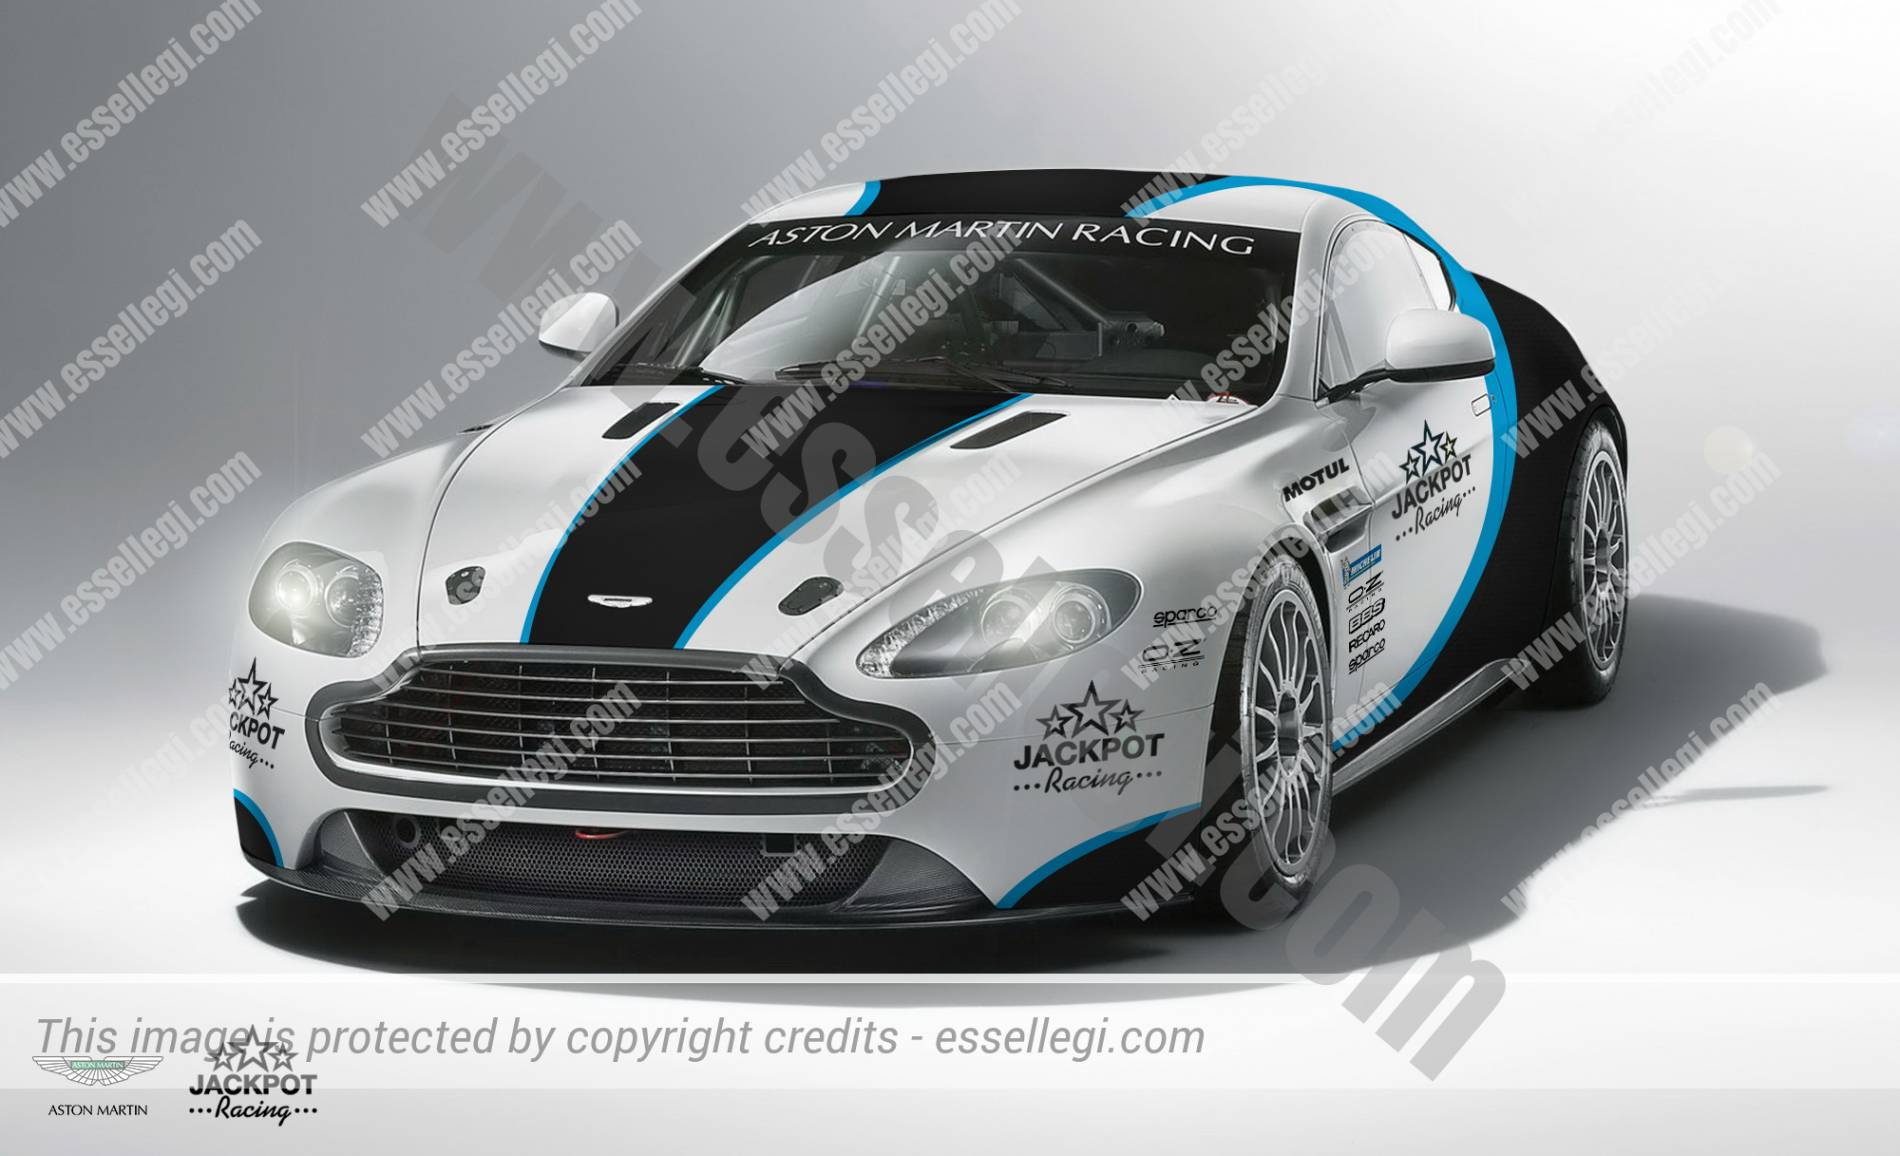 Aston Martin | Motorsport U2013 Racing U2013 Race Car Livery